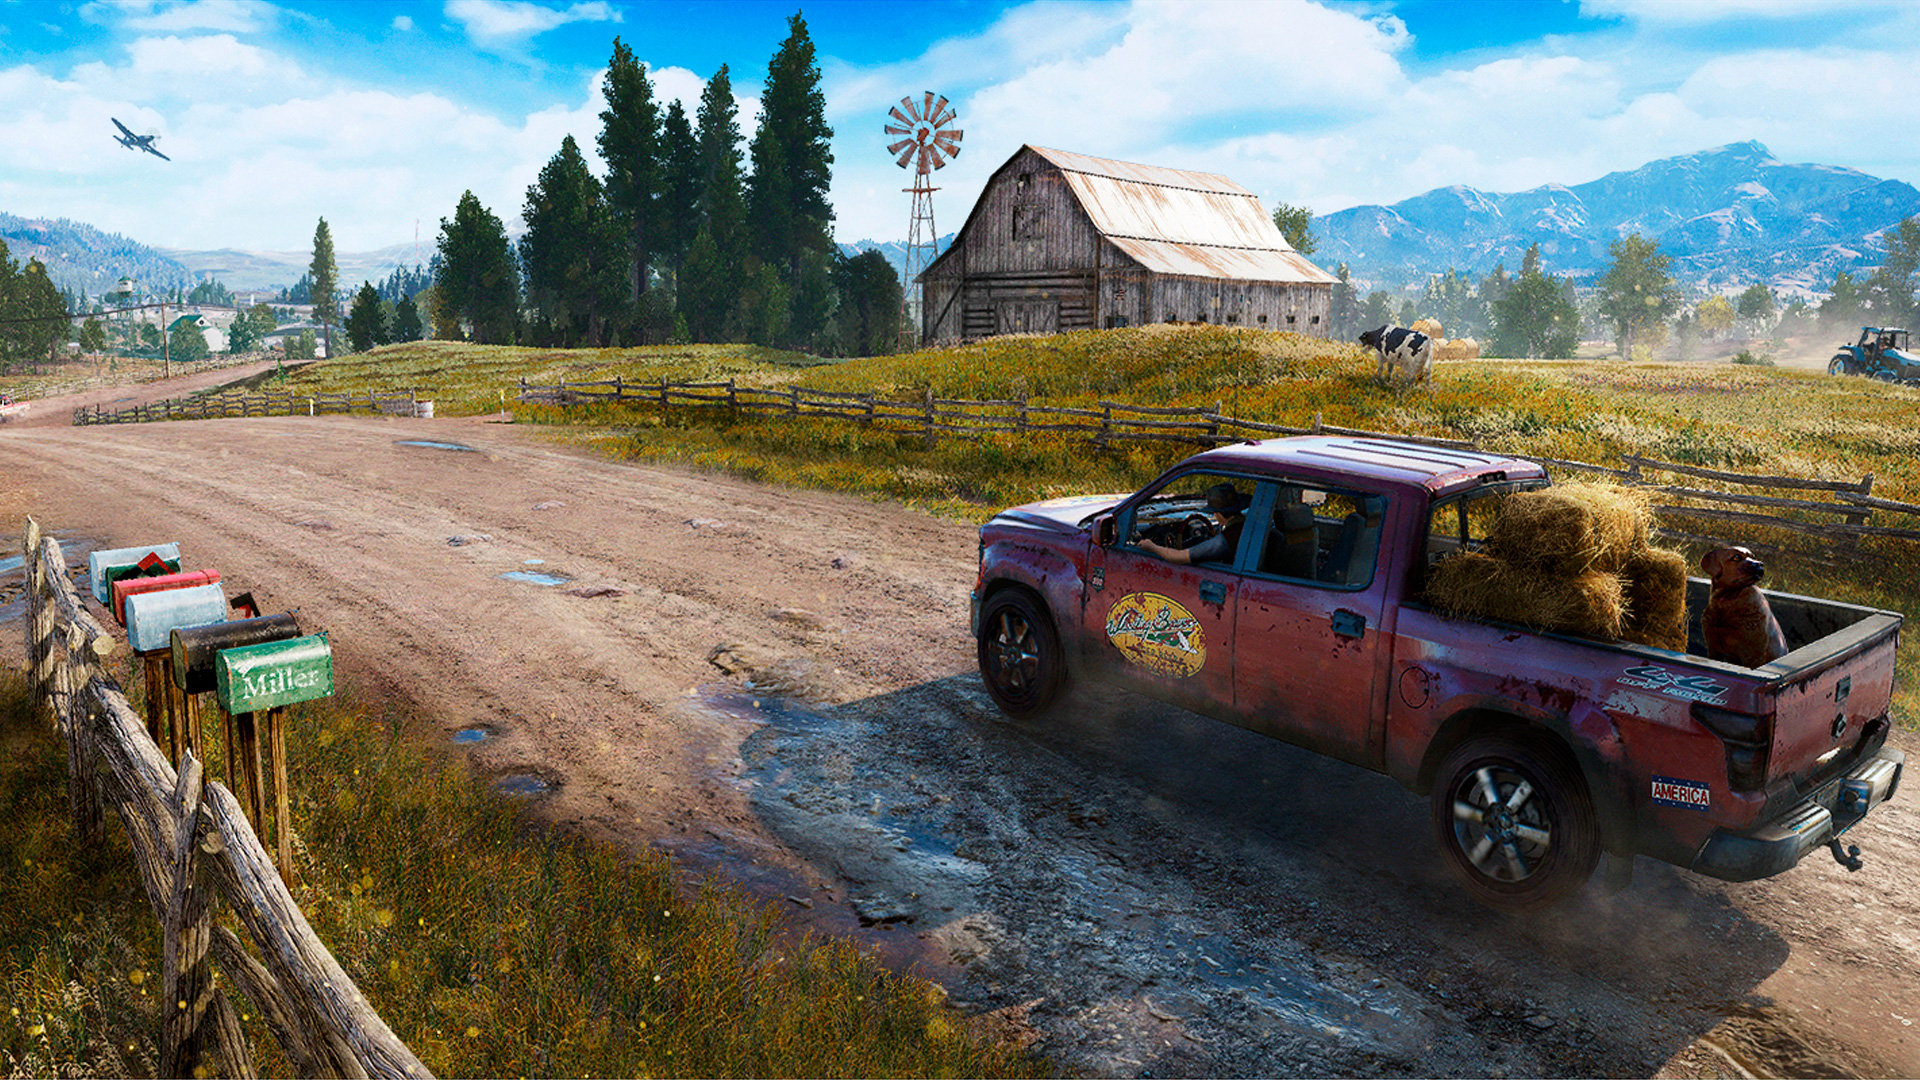 %name Far Cry 5 rolling out this year with a twist in the storyline   Minimum and Recommended specifications listed!